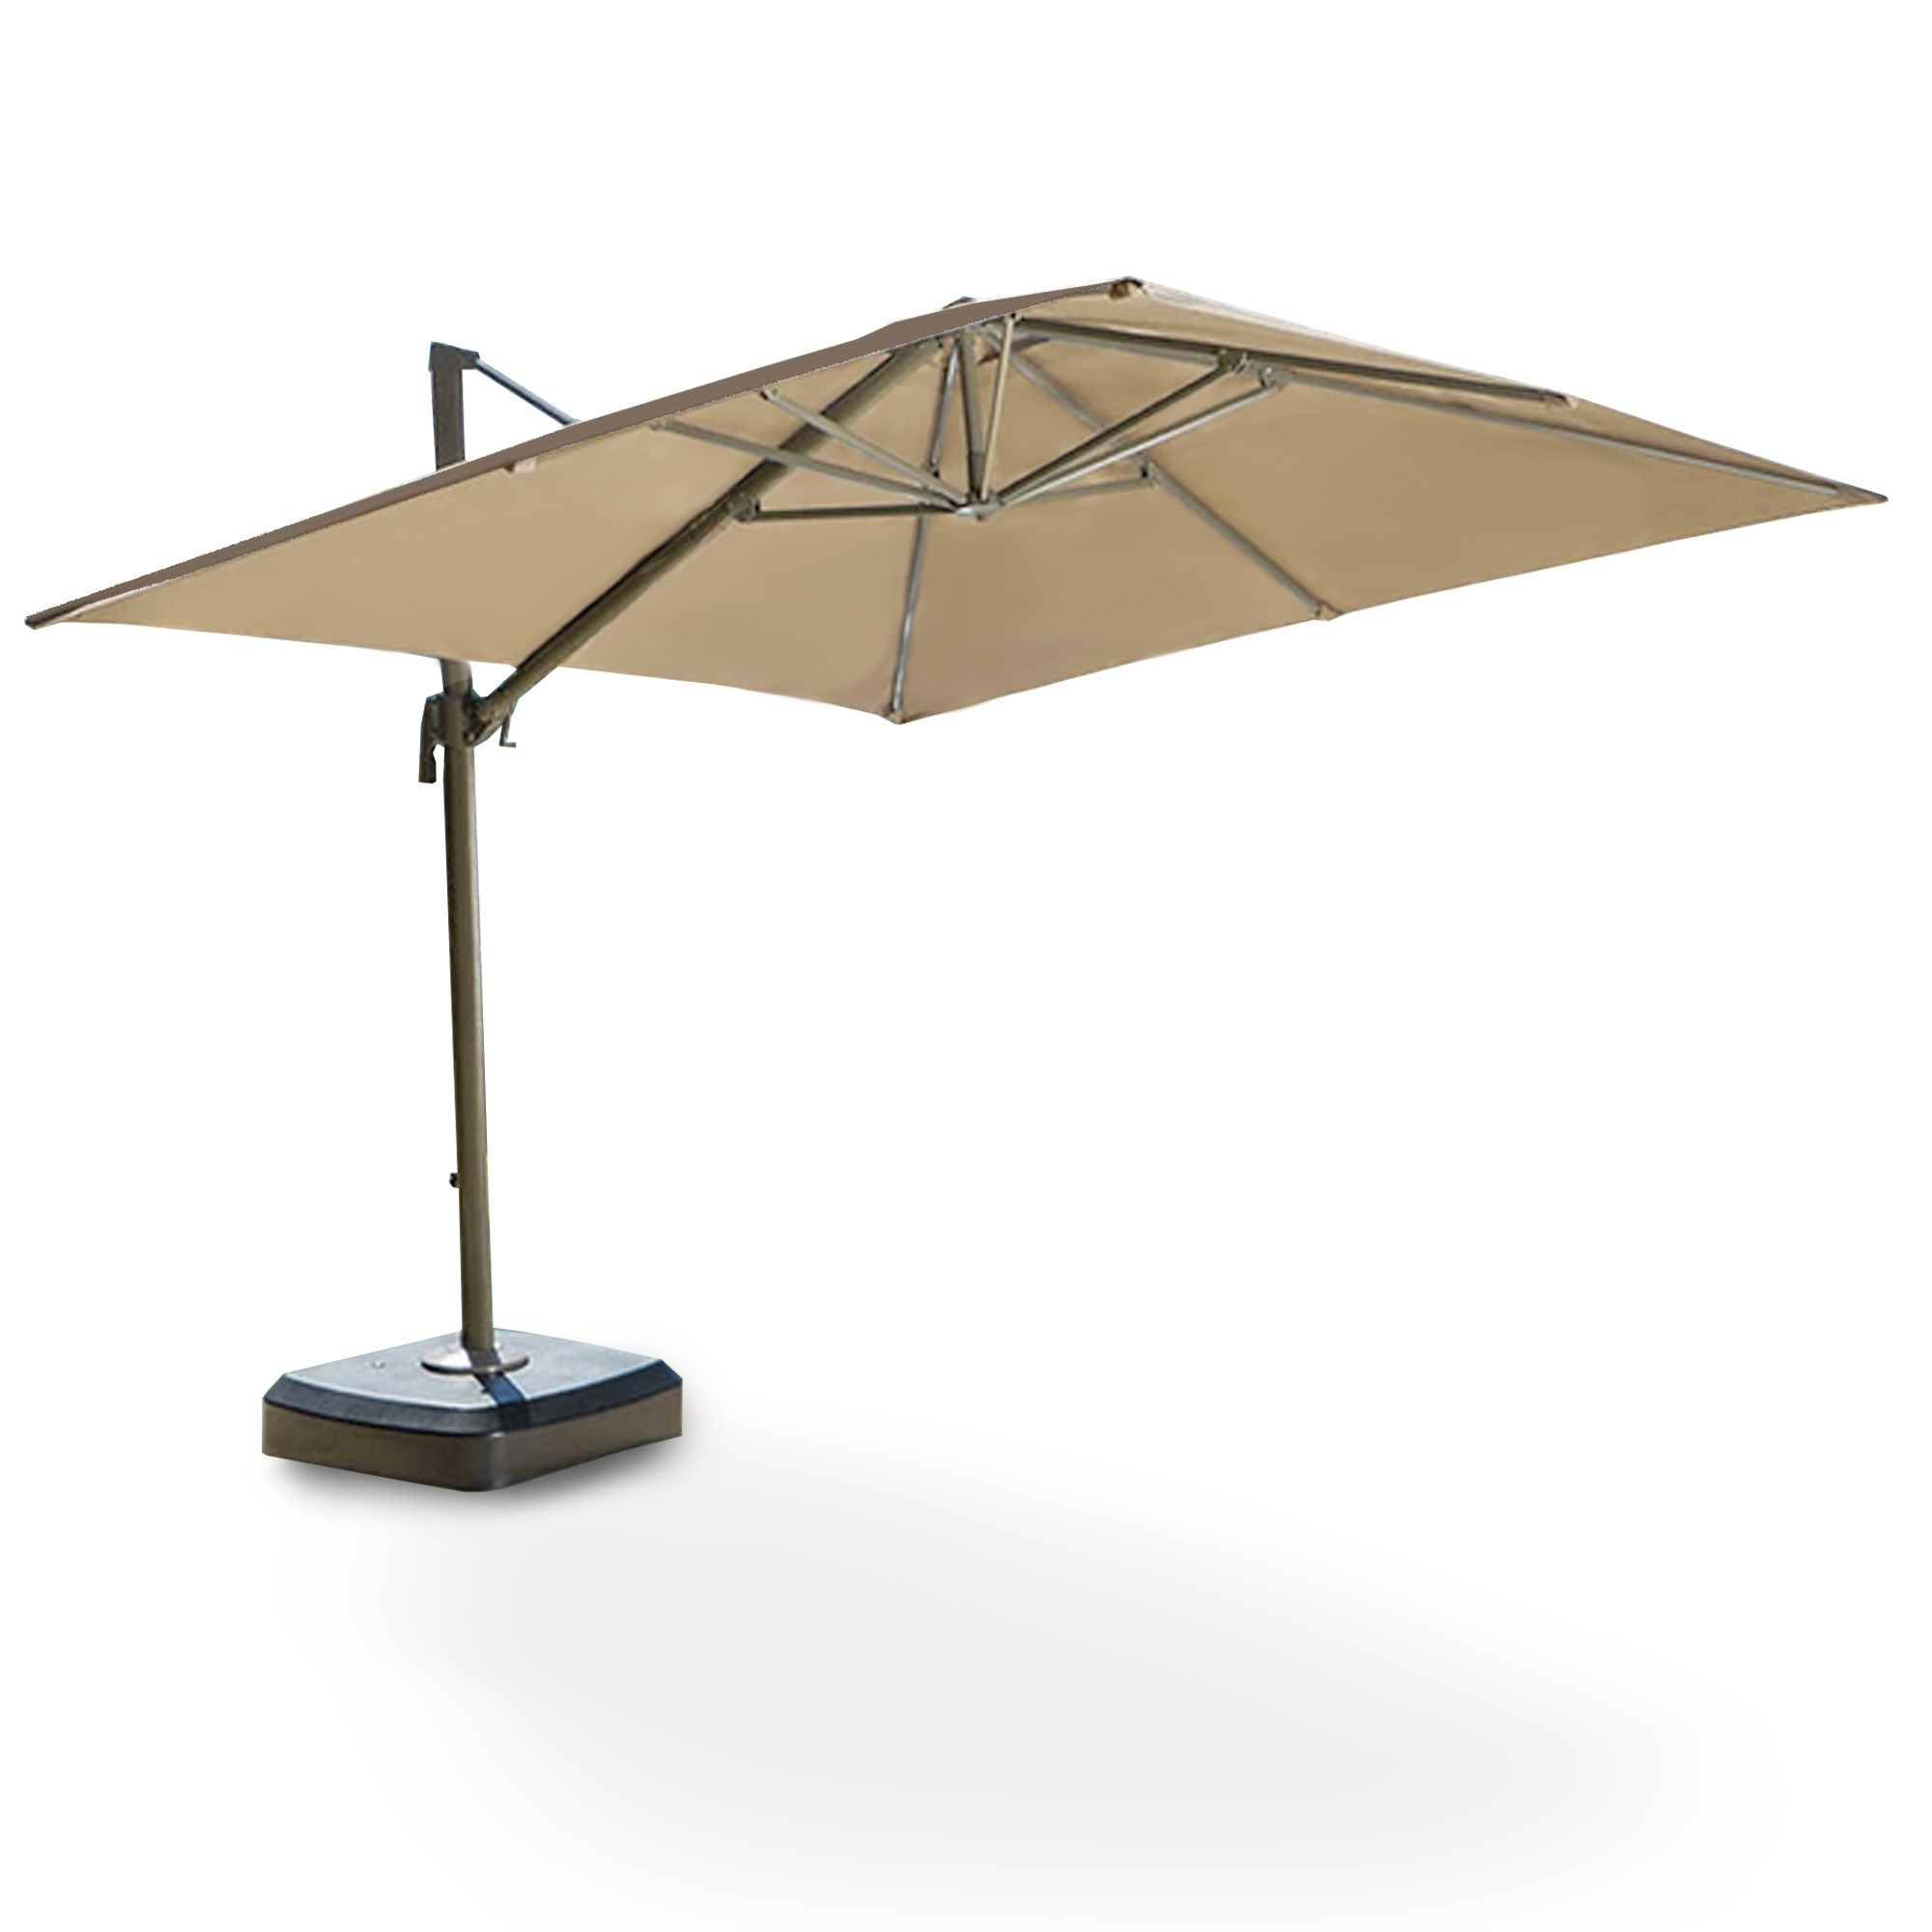 2019 Costco Replacement Umbrella Canopy – Garden Winds Intended For Kohls Patio Umbrellas (View 14 of 20)